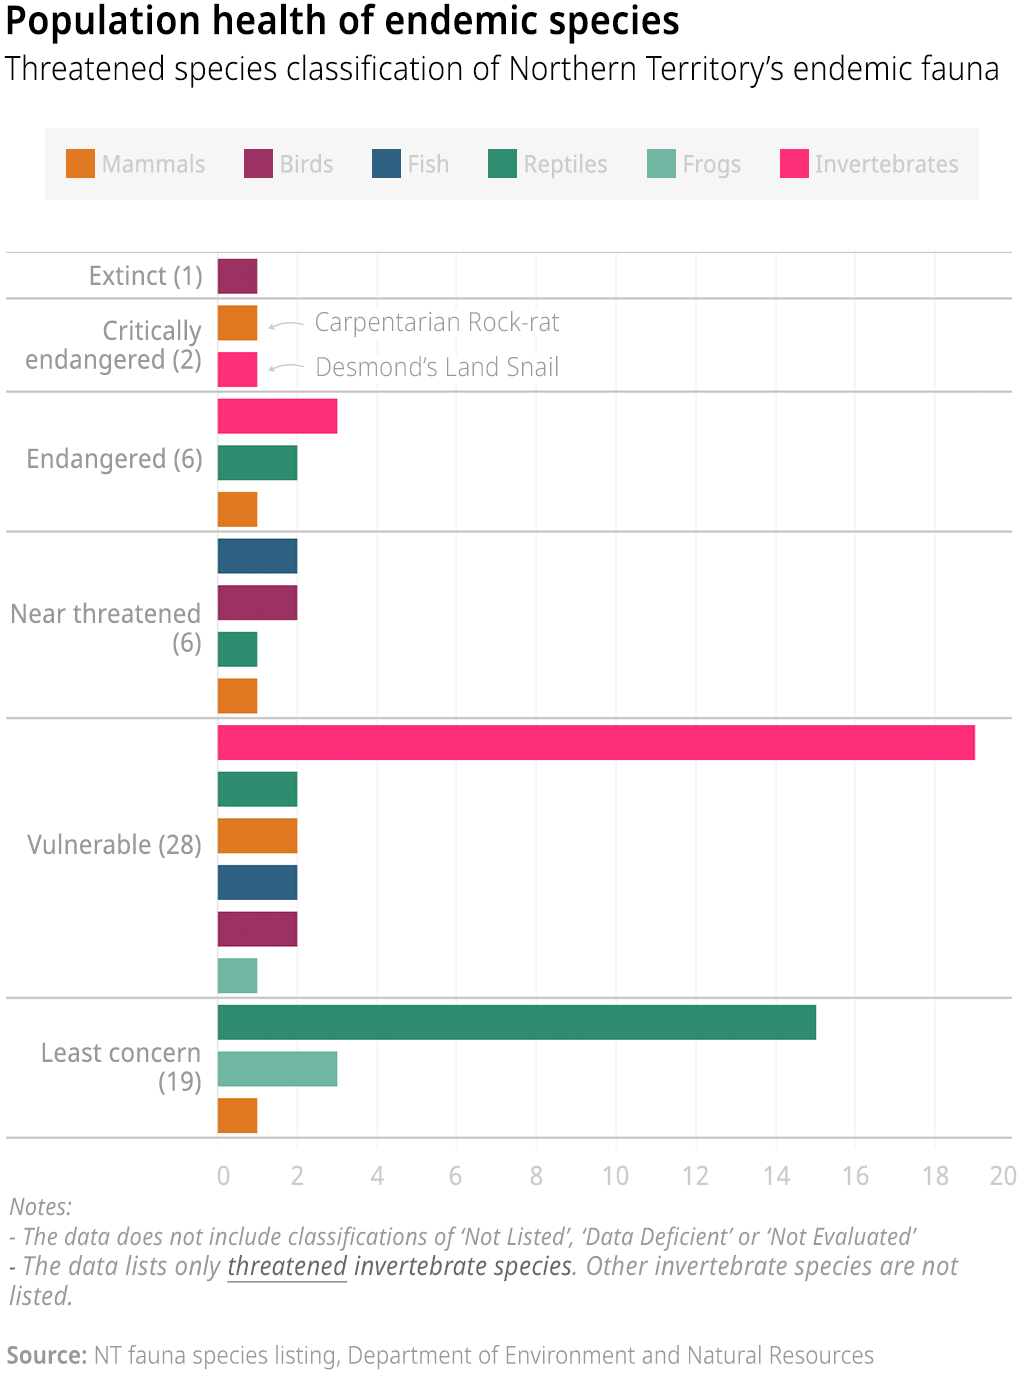 Chart showing the threatened species classification of fauna endemic to the Northern Territory, by animal type.